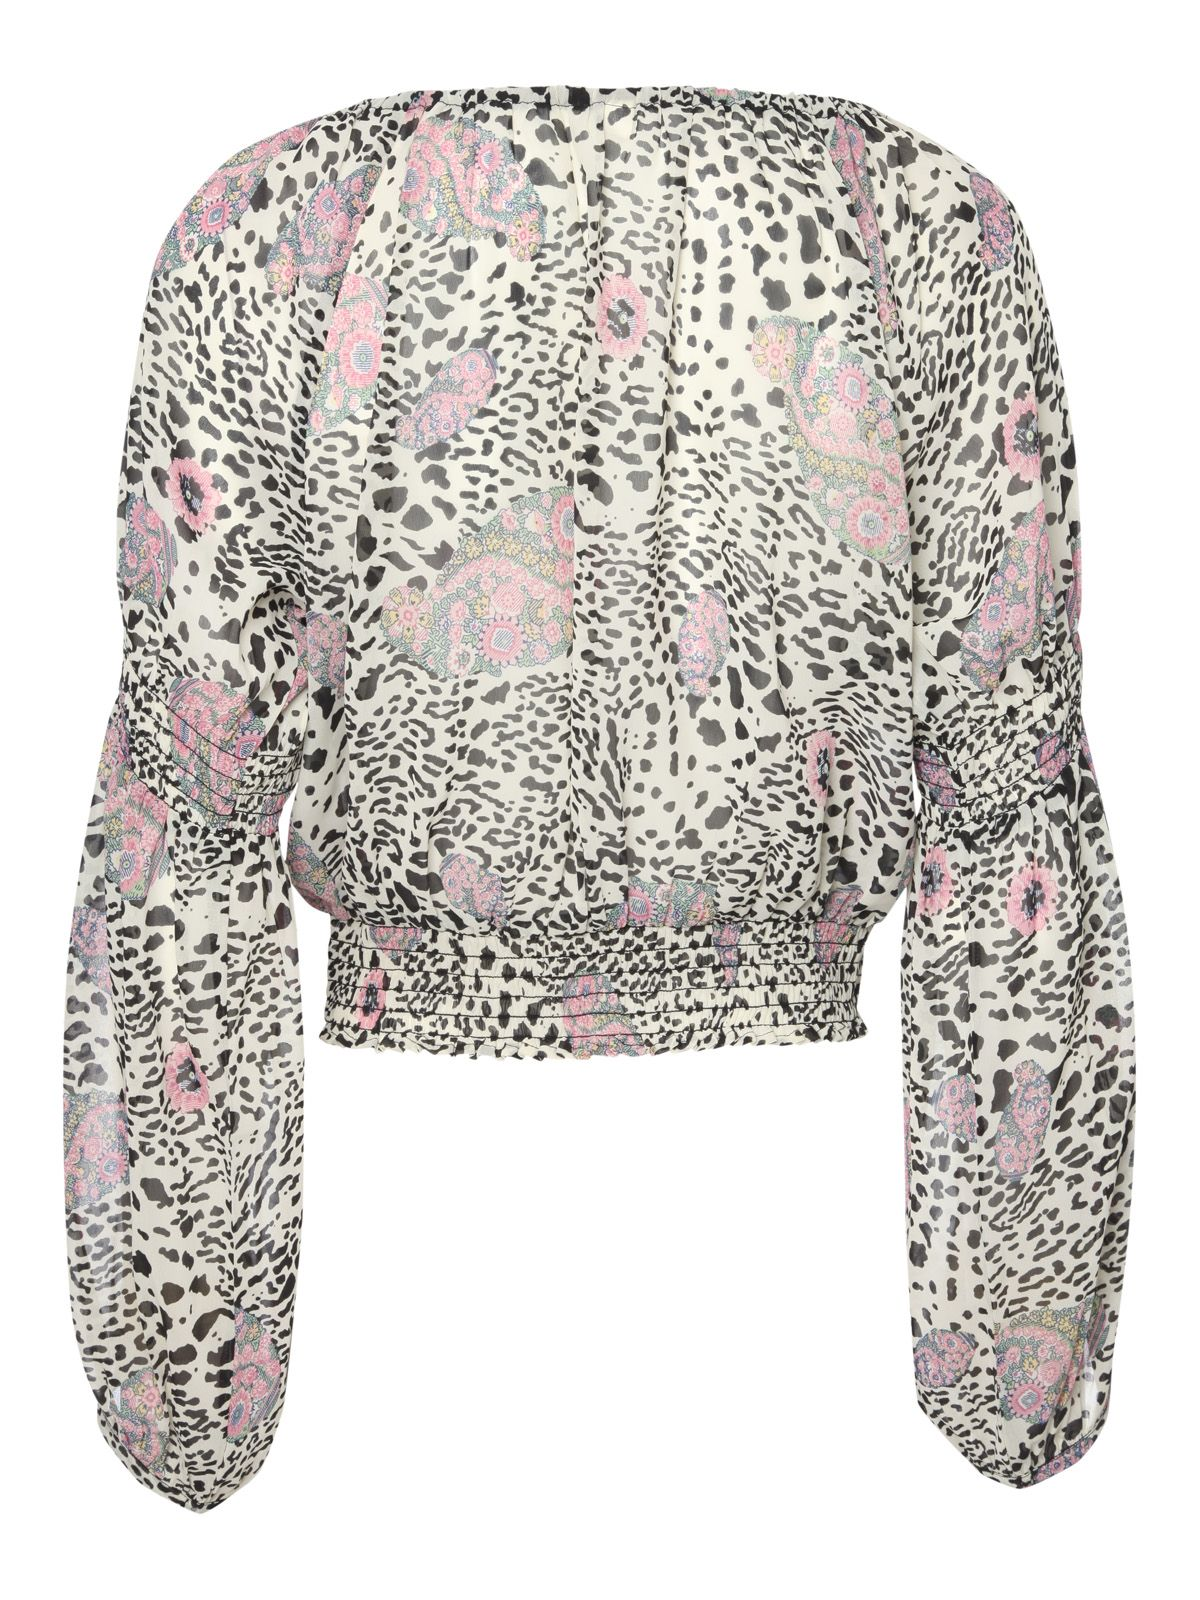 Sheer print long sleeve gypsy top